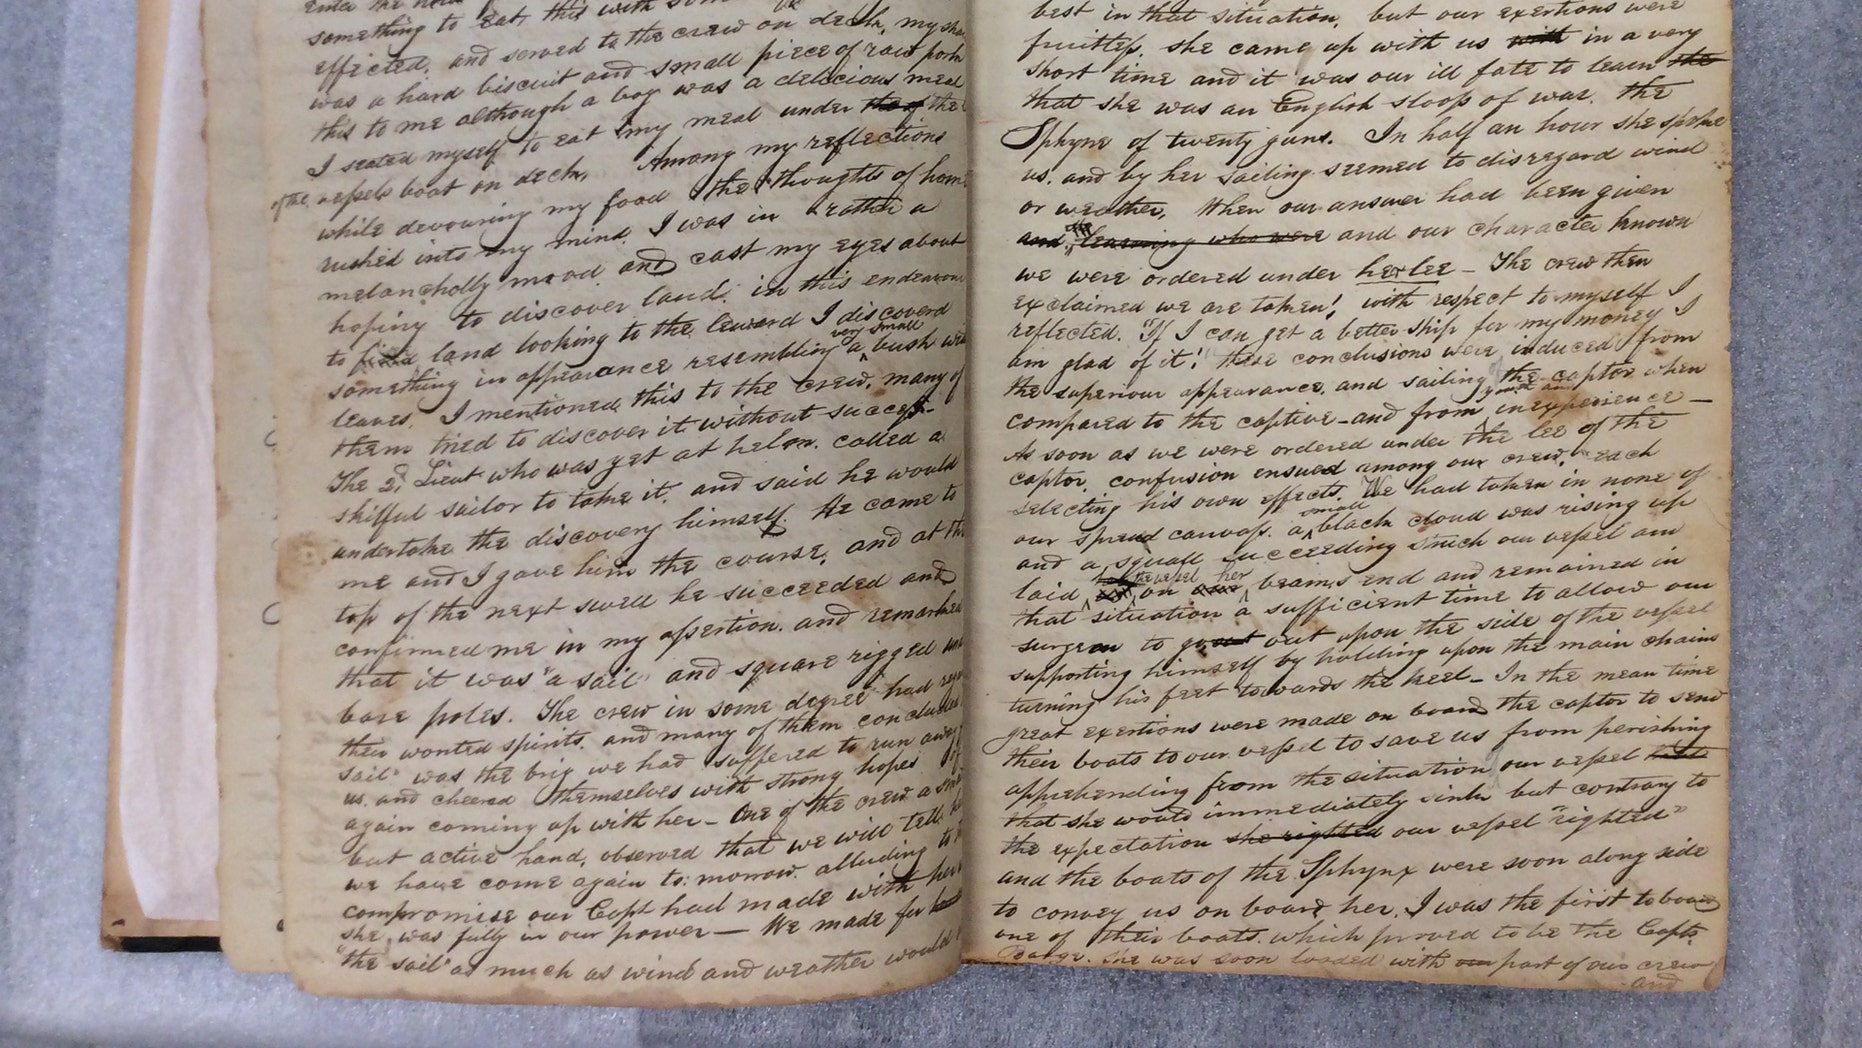 Christopher Hawkins' Revolutionary War journal (Museum of the American Revolution)